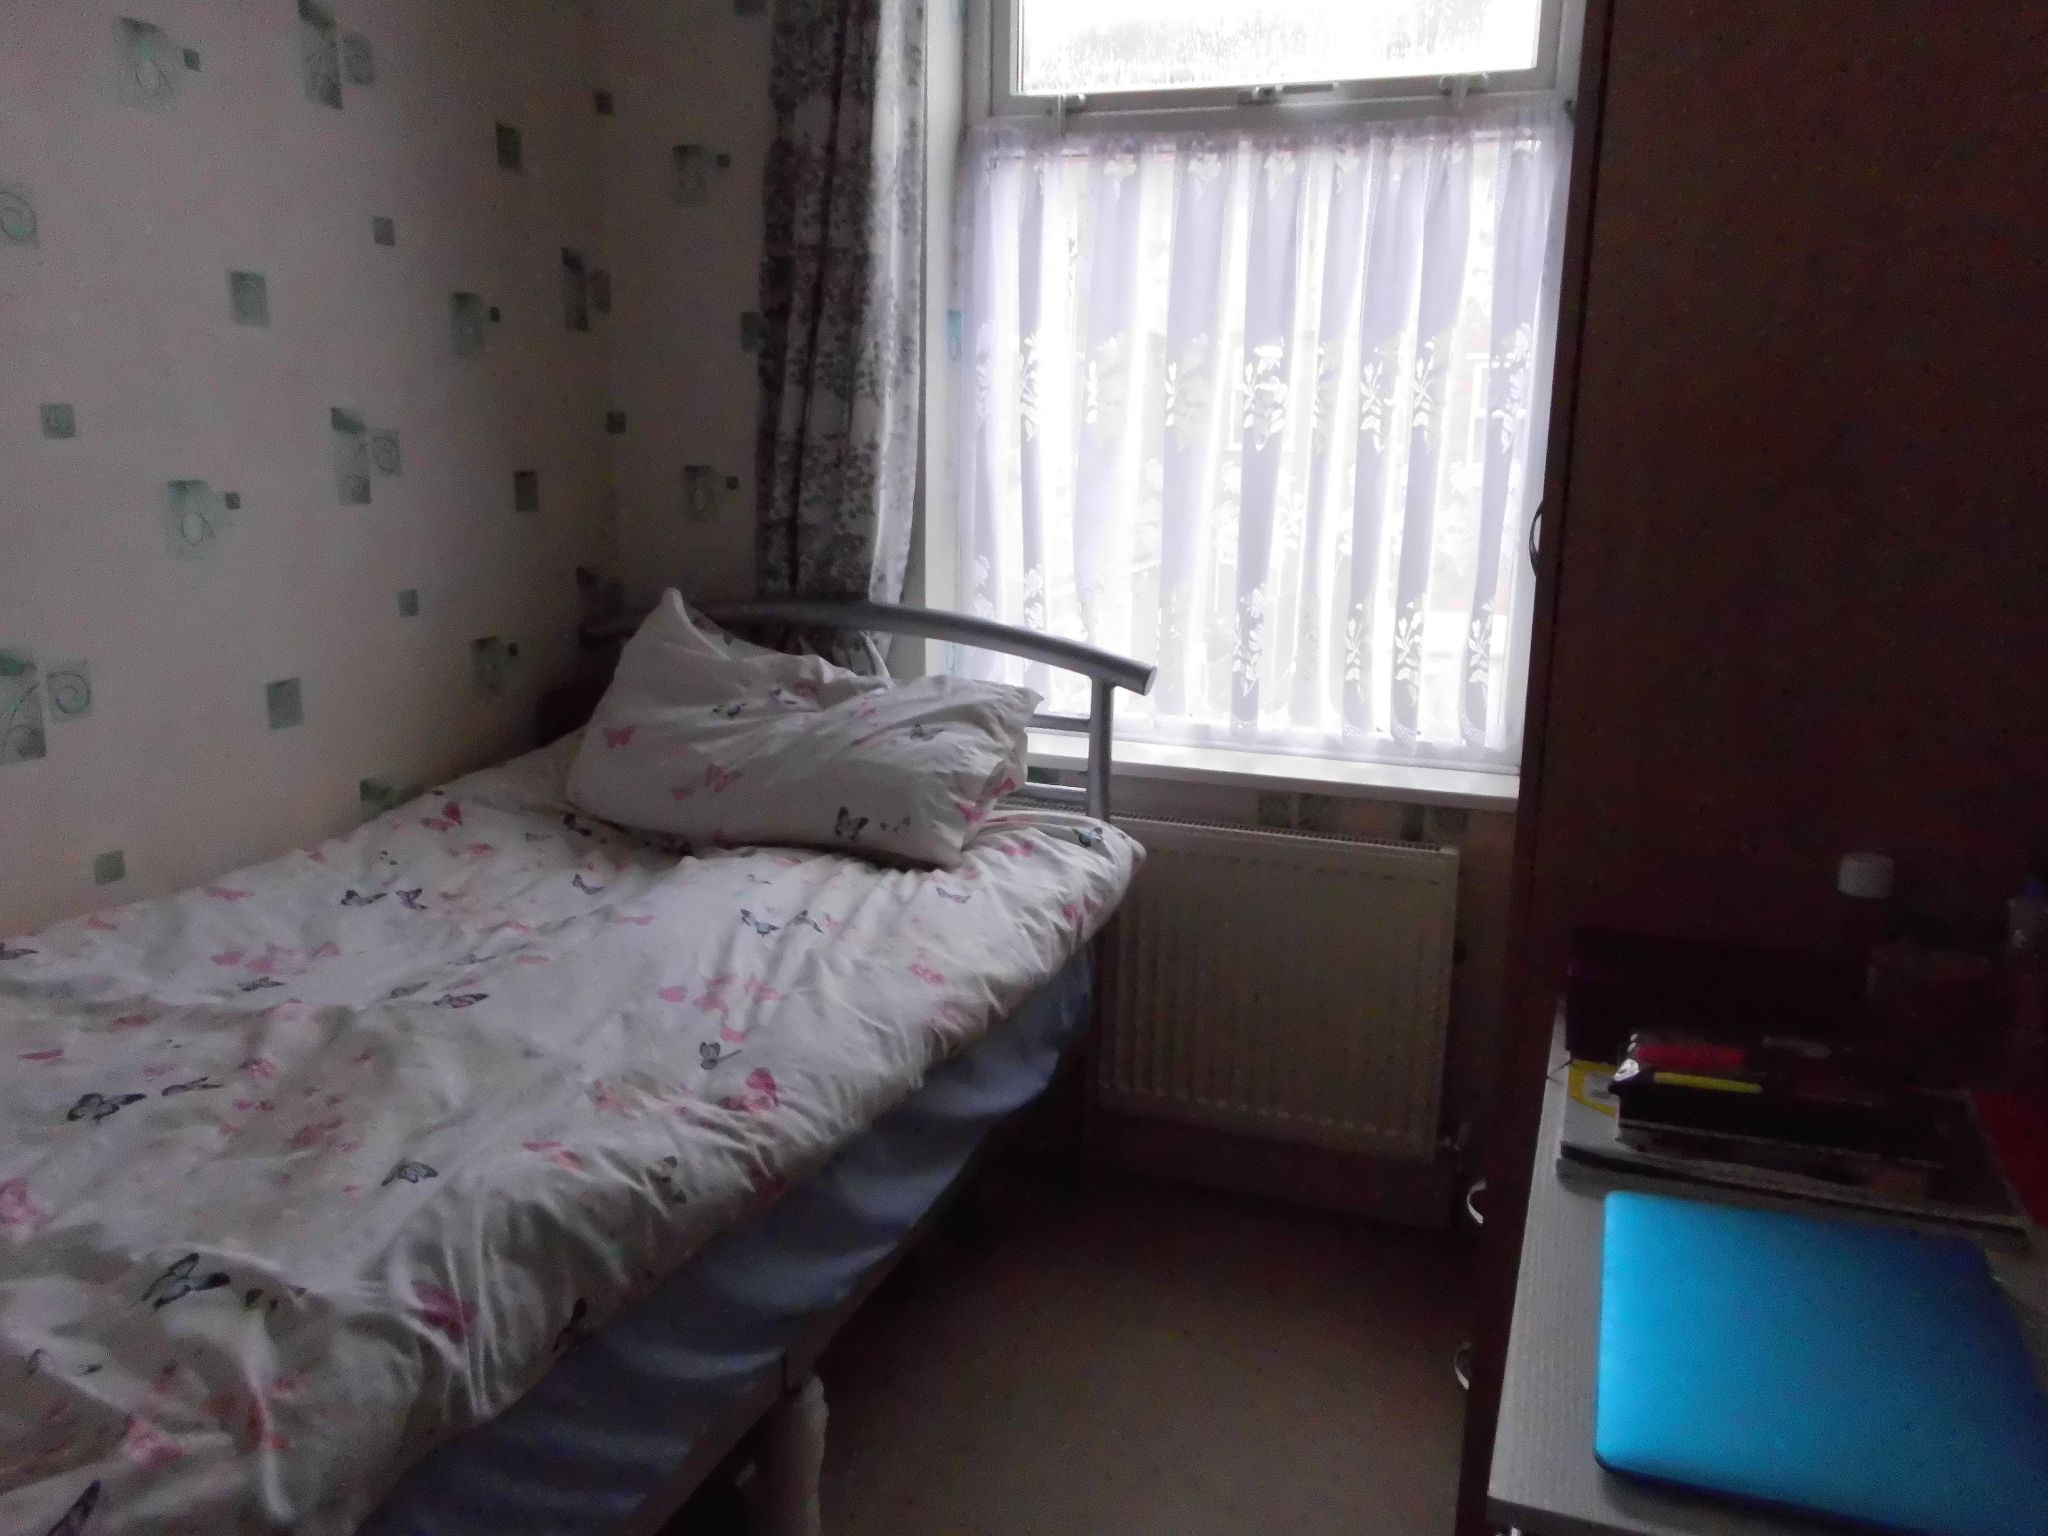 3 bedroom mid terraced house SSTC in Leicester - Photograph 10.